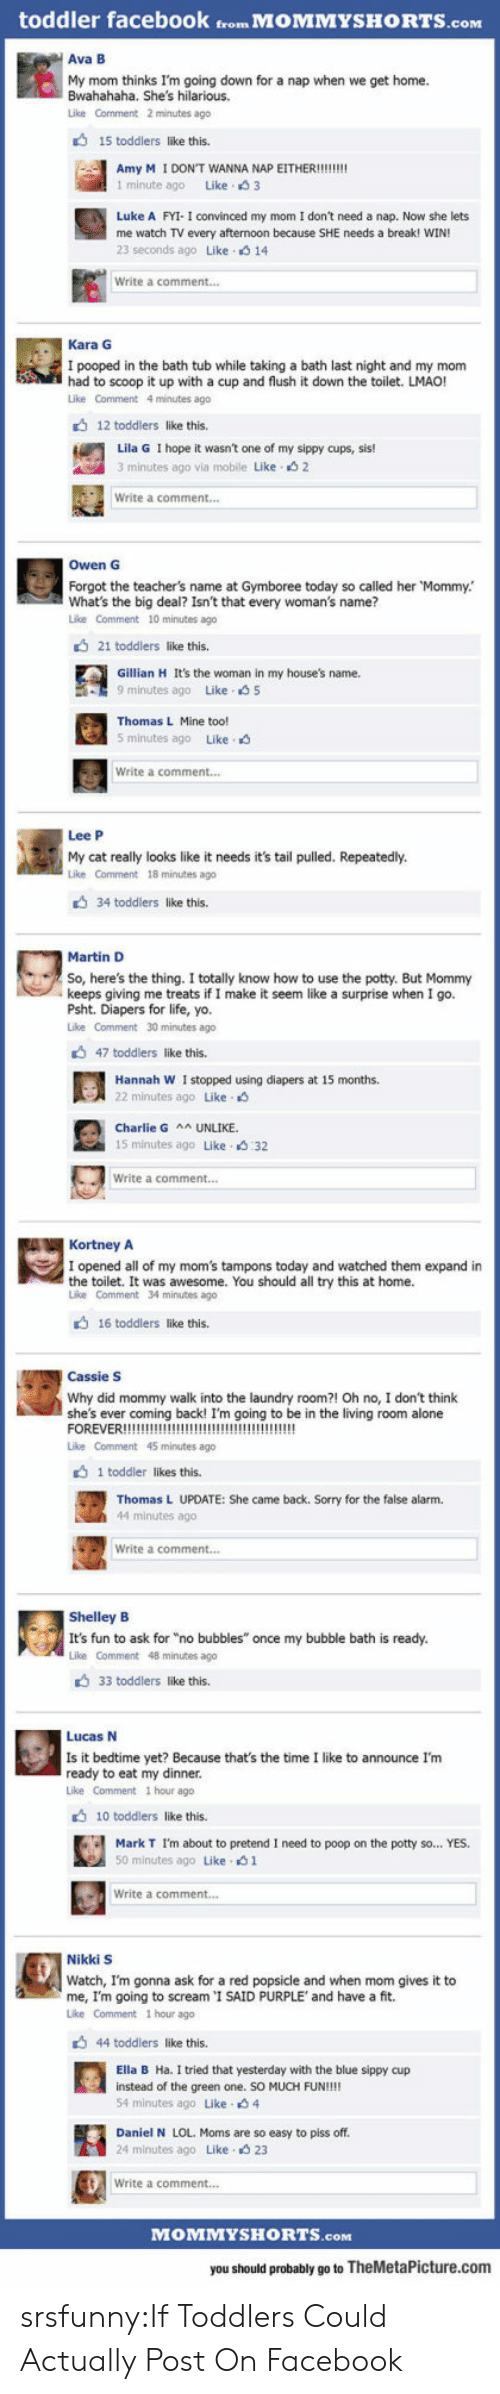 """popsicle: toddler facebook from MOMMYSHORTS.com  Ava B  My mom thinks I'm going down for a nap when we get home.  Bwahahaha. She's hilarious.  Like Comment 2 minutes ago  15 toddlers like this.  1 minute ago Like 3  Luke A FYI- I convinced my mom I don't need a nap. Now she lets  me watch TV every afternoon because SHE needs a break! WIN  23 seconds ago Like 14  Write a comment...  Kara G  I pooped in the bath tub while taking a bath last night and my mom  had to scoop it up with a cup and flush it down the toilet. LMAO!  Like Comment 4 minutes ago  12 toddlers like this  Lila G I hope it wasn't one of my sippy cups, sis!  3 minutes ago via mobile Like s 2  Write a comment...  Owen G  Forgot the teacher's name at Gymboree today so called her Mommy.  What's the big deal? Isn't that every woman's name?  Like Comment 10 minutes ago  21 toddlers like this.  Gillian H It's the woman in my house's name.  9 minutes ago Like 5  Thomas L Mine too!  5 minutes ago Like.  Write a comment...  Lee P  My cat really looks like it needs it's tail pulled. Repeatedly.  Like Comment 18 minutes ago  34 toddlers like this.  Martin D  So, here's the thing. I totally know how to use the potty. But Mommy  keeps giving me treats if I make it seem like a surprise when I go.  Psht. Diapers for life, yo.  Like Comment 30 minutes ago  47 toddlers like this.  Hannah W I stopped using diapers at 15 months.  22 minutes ago Like  Charlie G UNLIKE  15 minutes ago Like 32  Write a comment..  KortneyA  I opened all of my mom's tampons today and watched them expand in  the toilet. It was awesome. You should all try this at home.  Like Comment 34 minutes ago  16 toddlers like this.  Cassie S  Why did mommy walk into the laundry room?! Oh no, I don't think  she's ever coming back! I'm going to be in the living room alone  Like Comment 45 minutes ago  1 toddler likes this.  Thomas L UPDATE: She came back. Sorry for the false alarm.  44 minutes ago  Write a comment...  Shelley B  It's fun to ask for """"no bub"""